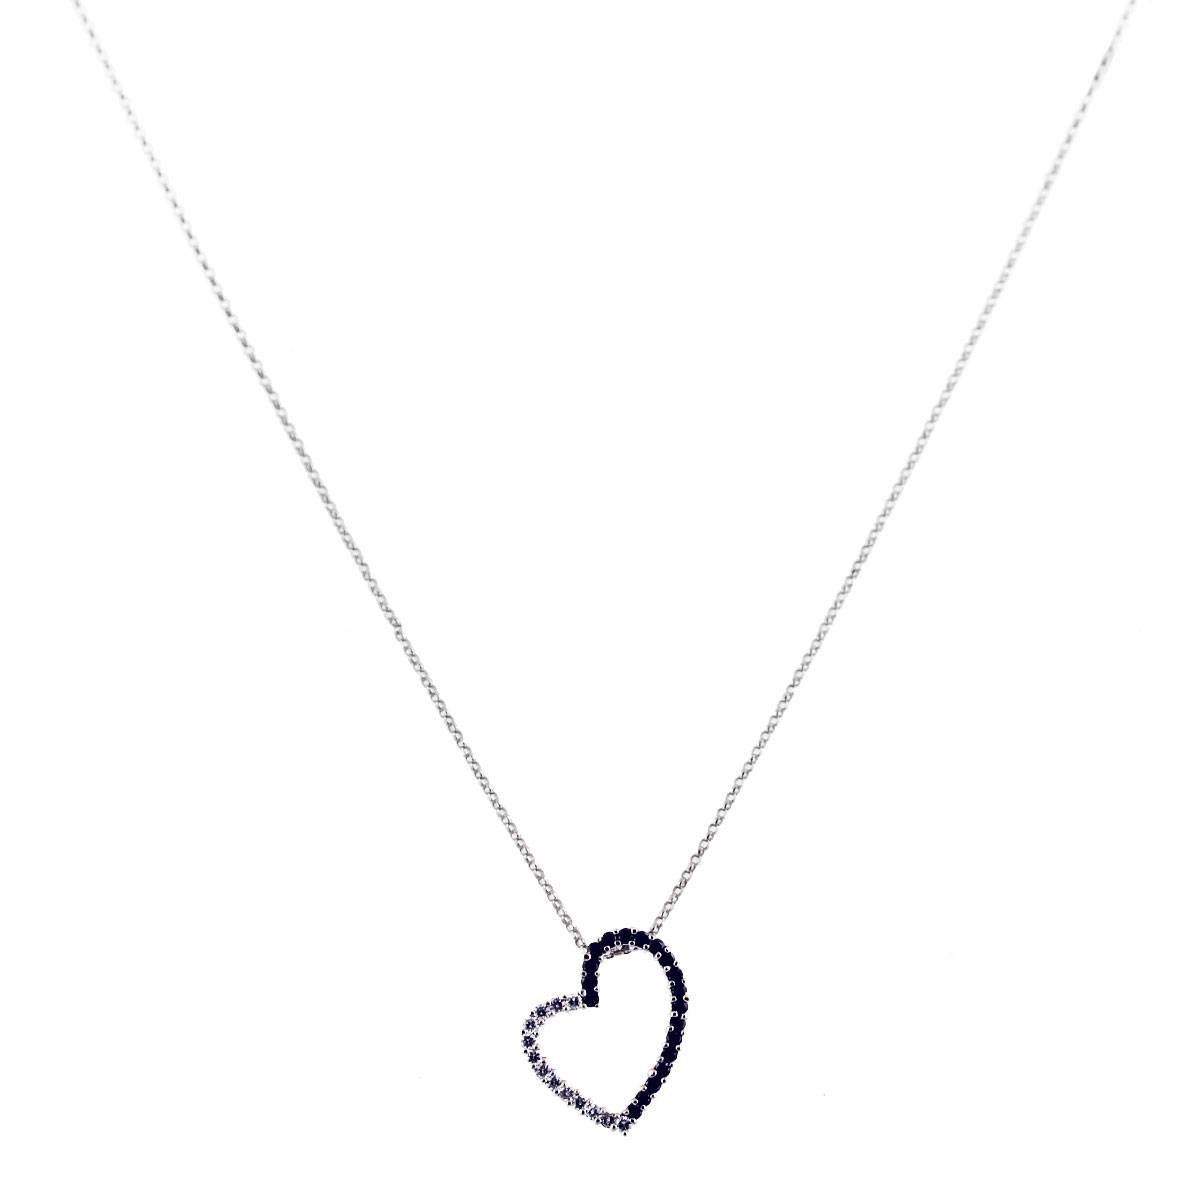 Heart Shaped Jewelry Just In Time For Valentines Day